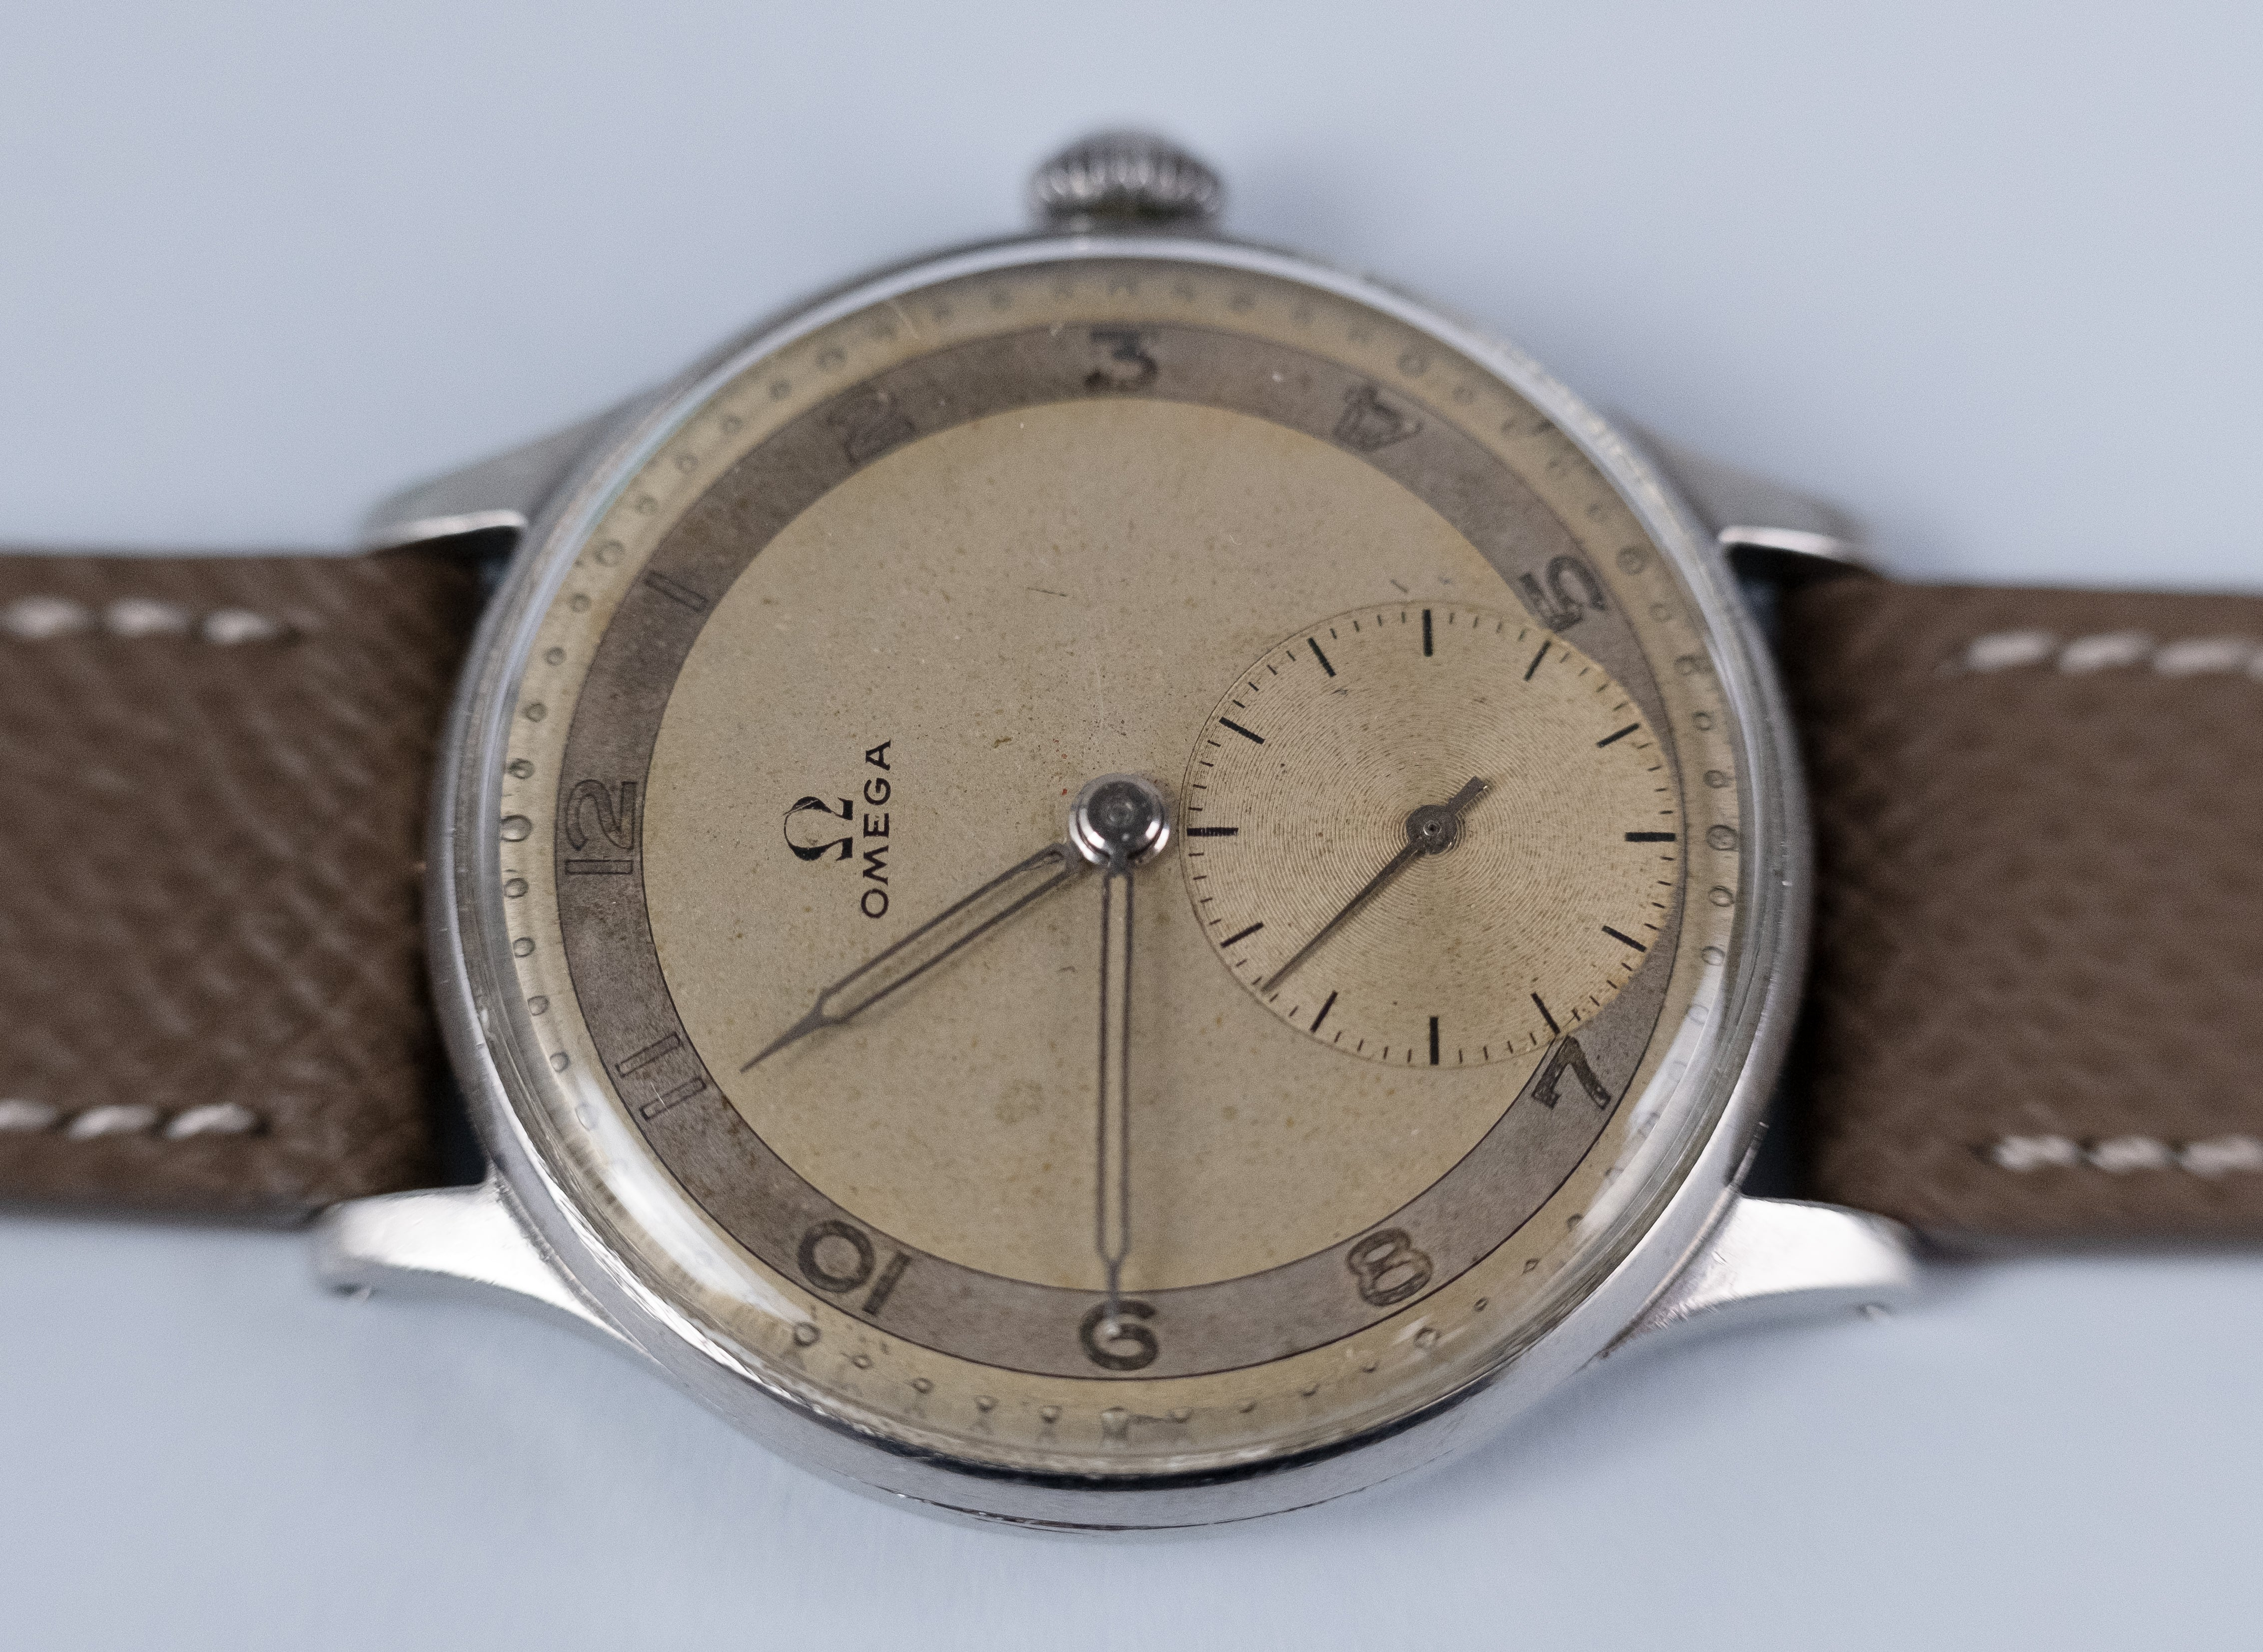 OMEGA 30.T2 Two-Tone dial ref 2317/15 (1946)